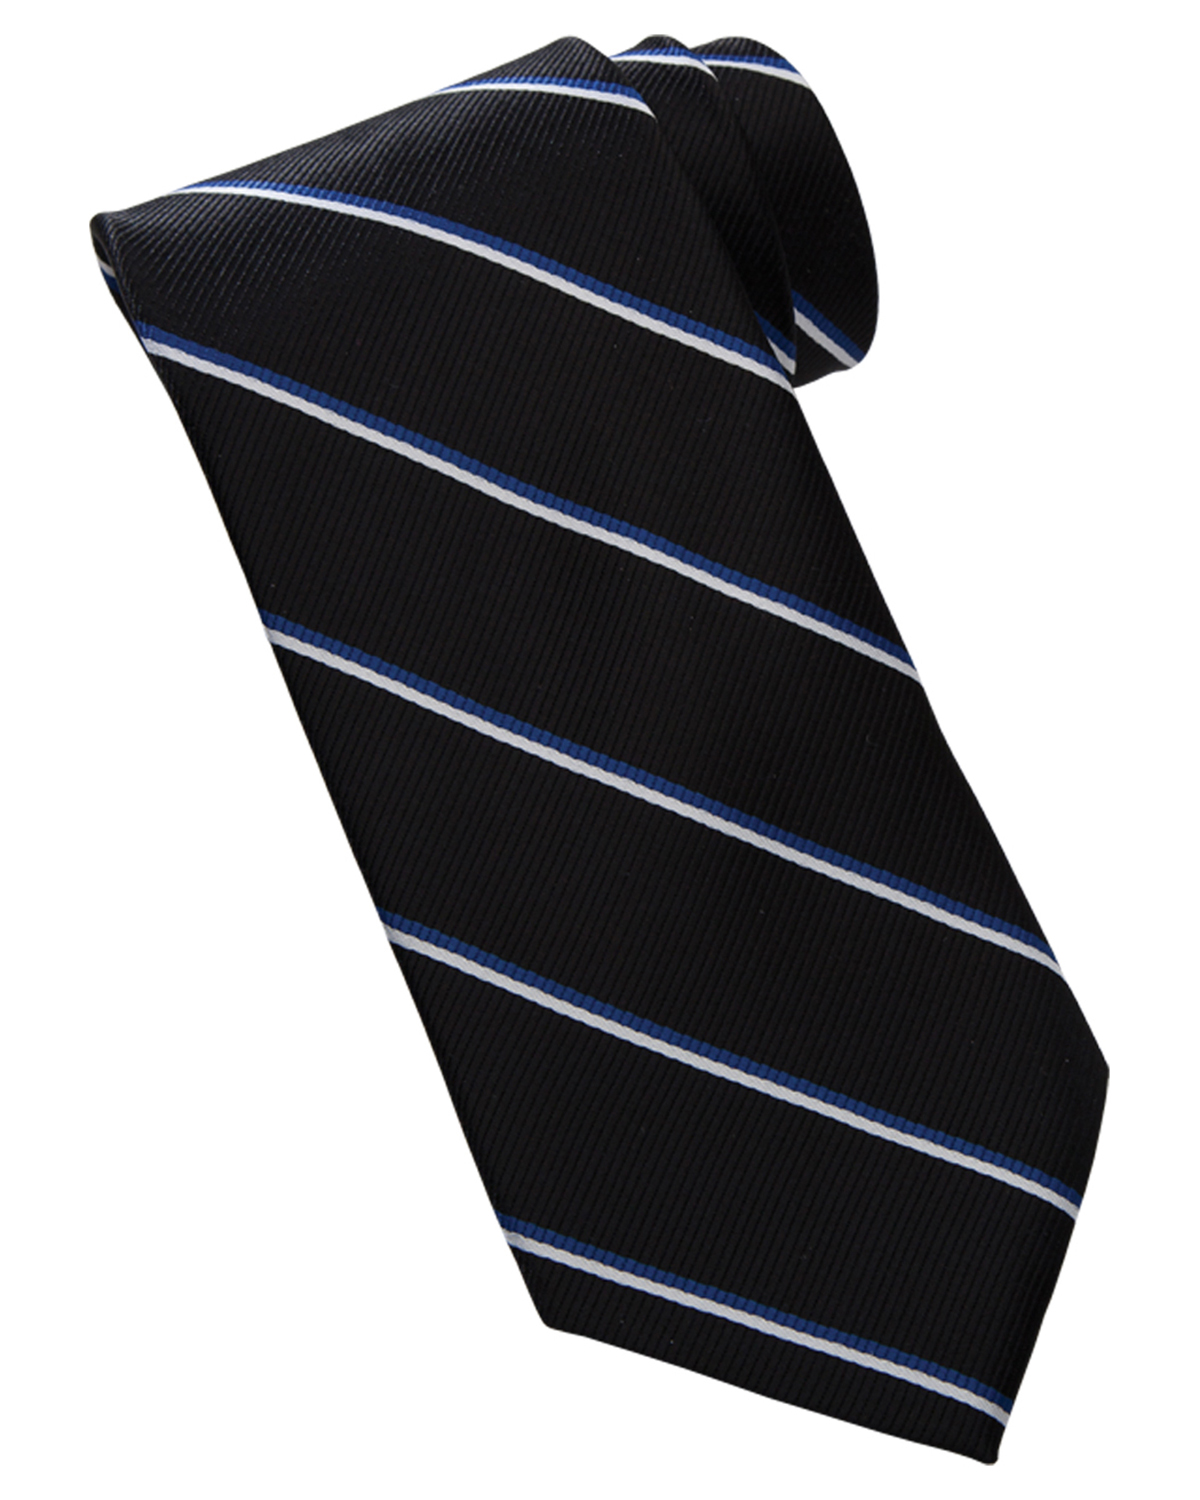 """Edwards Garment 22/"""" length Attach Security 3 3//4 Polyester Clip On Tie CL22"""